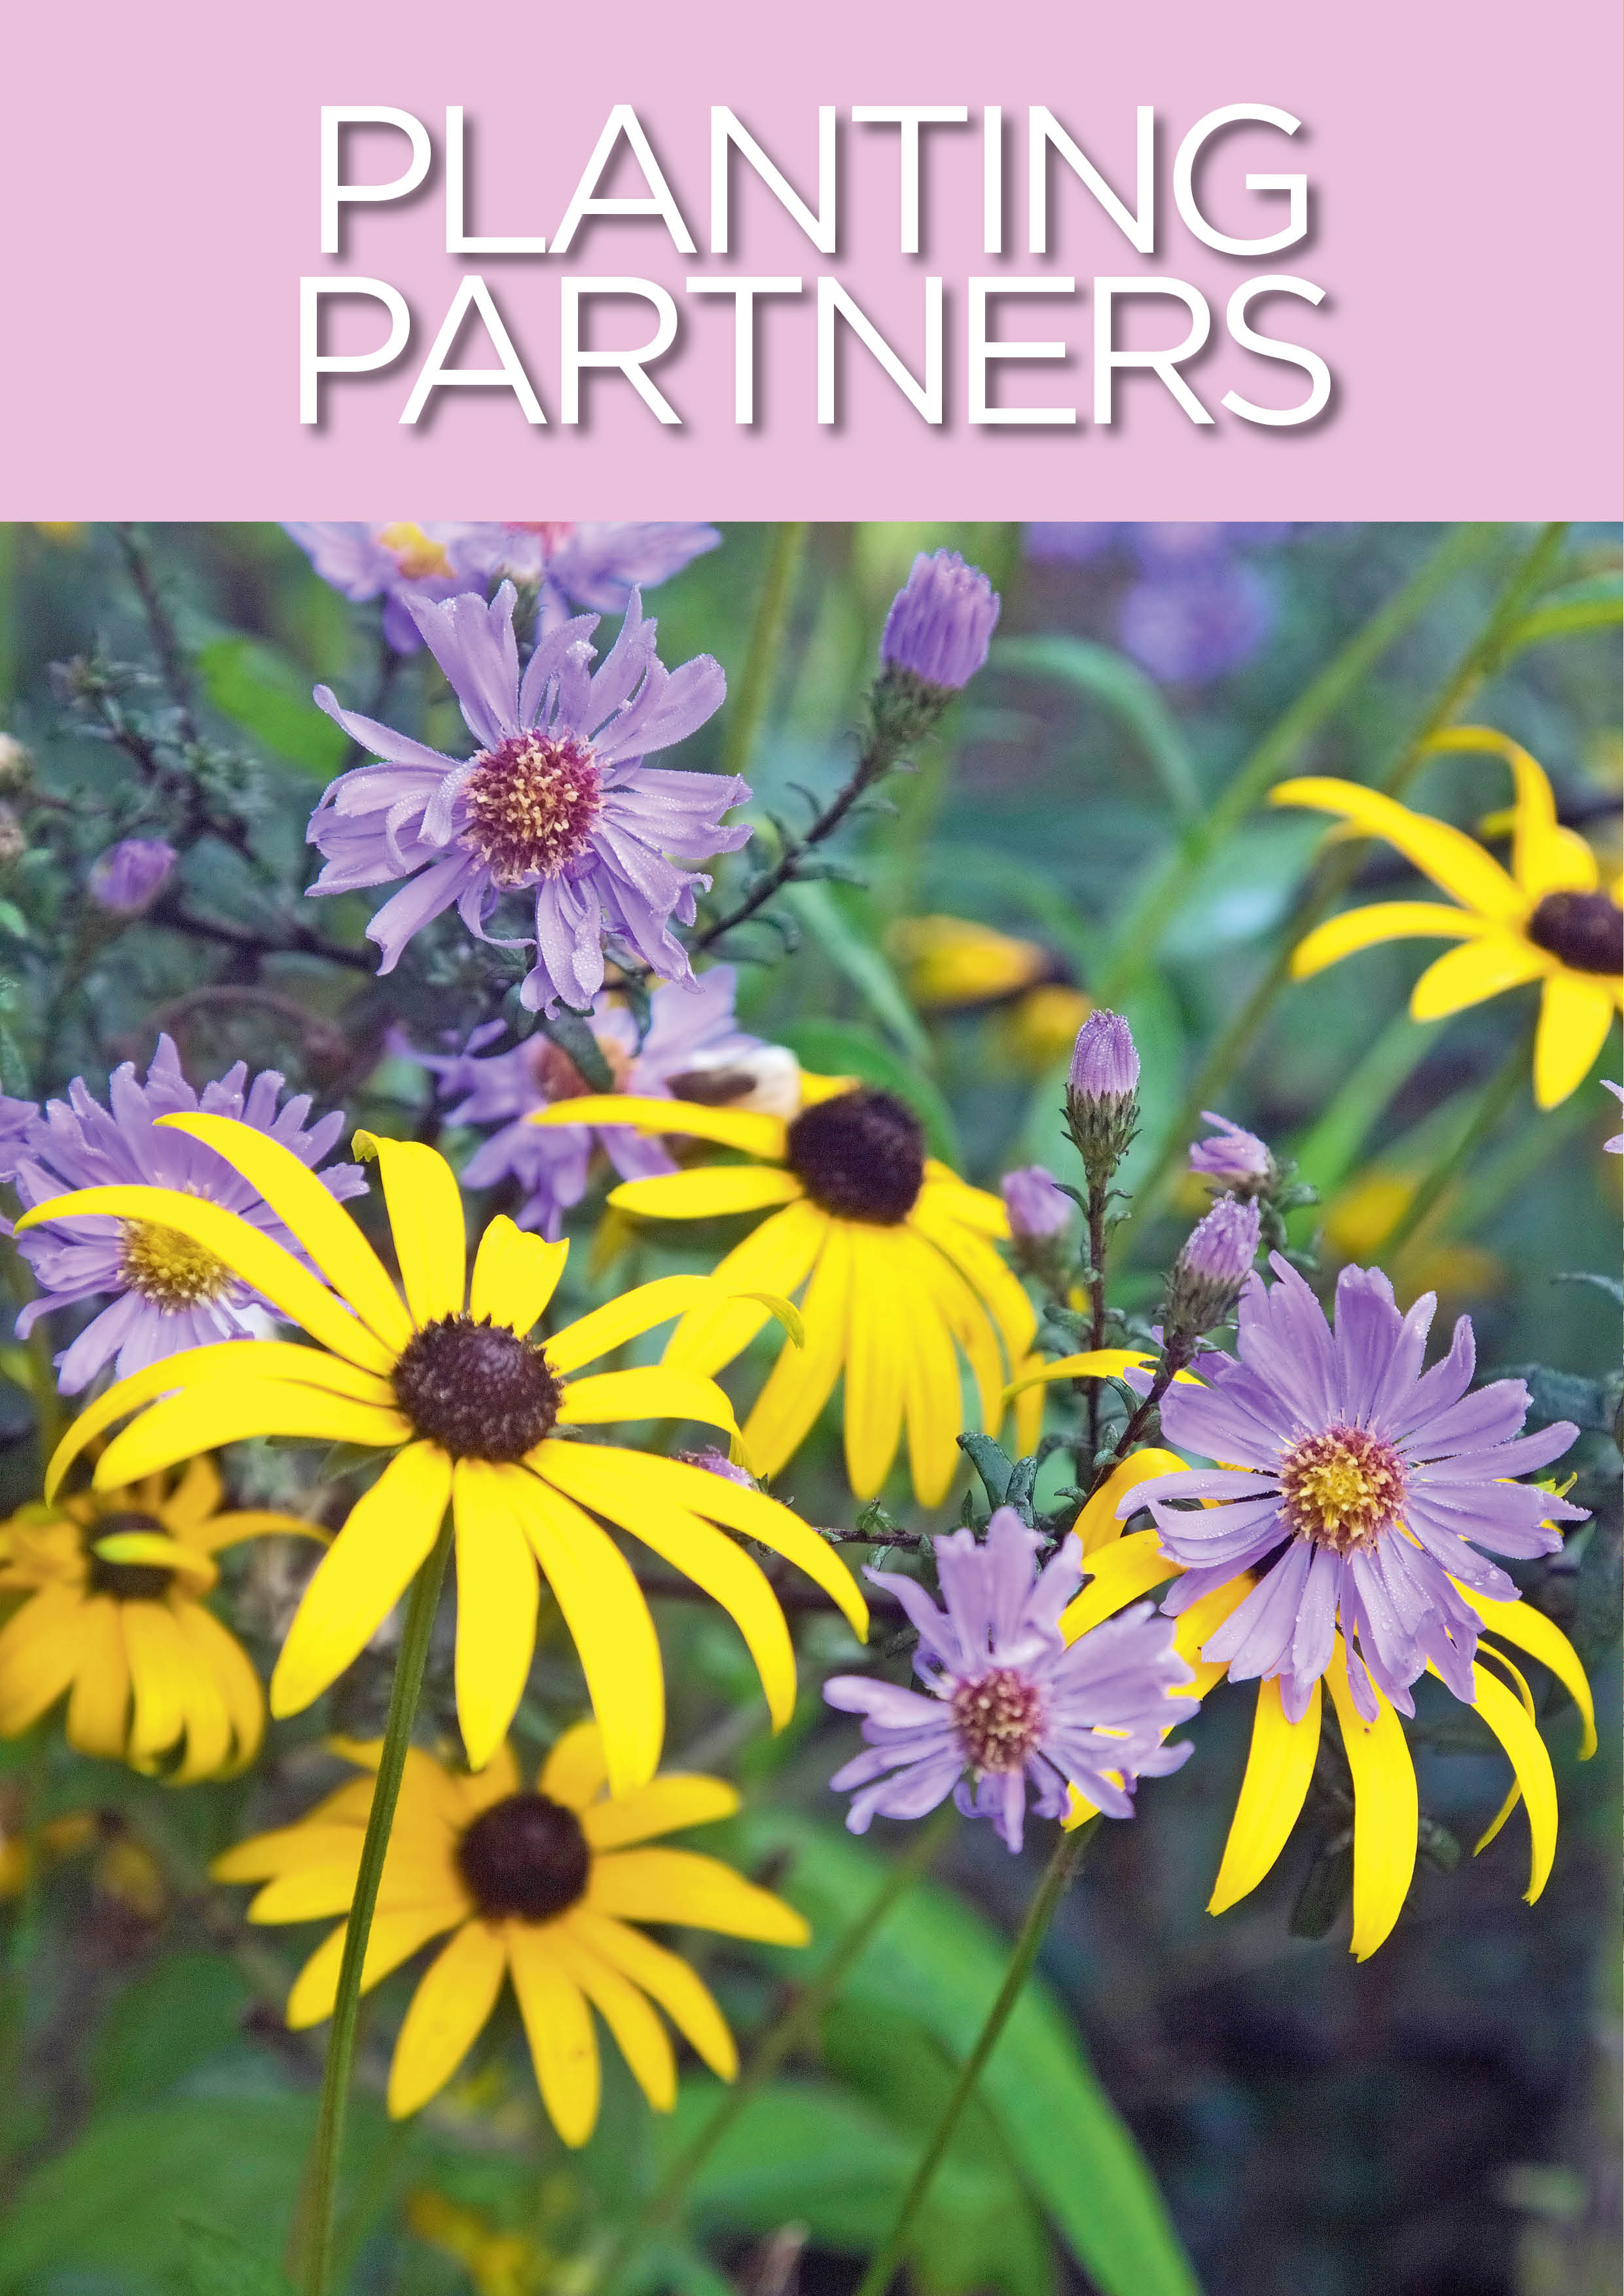 Planting Partners